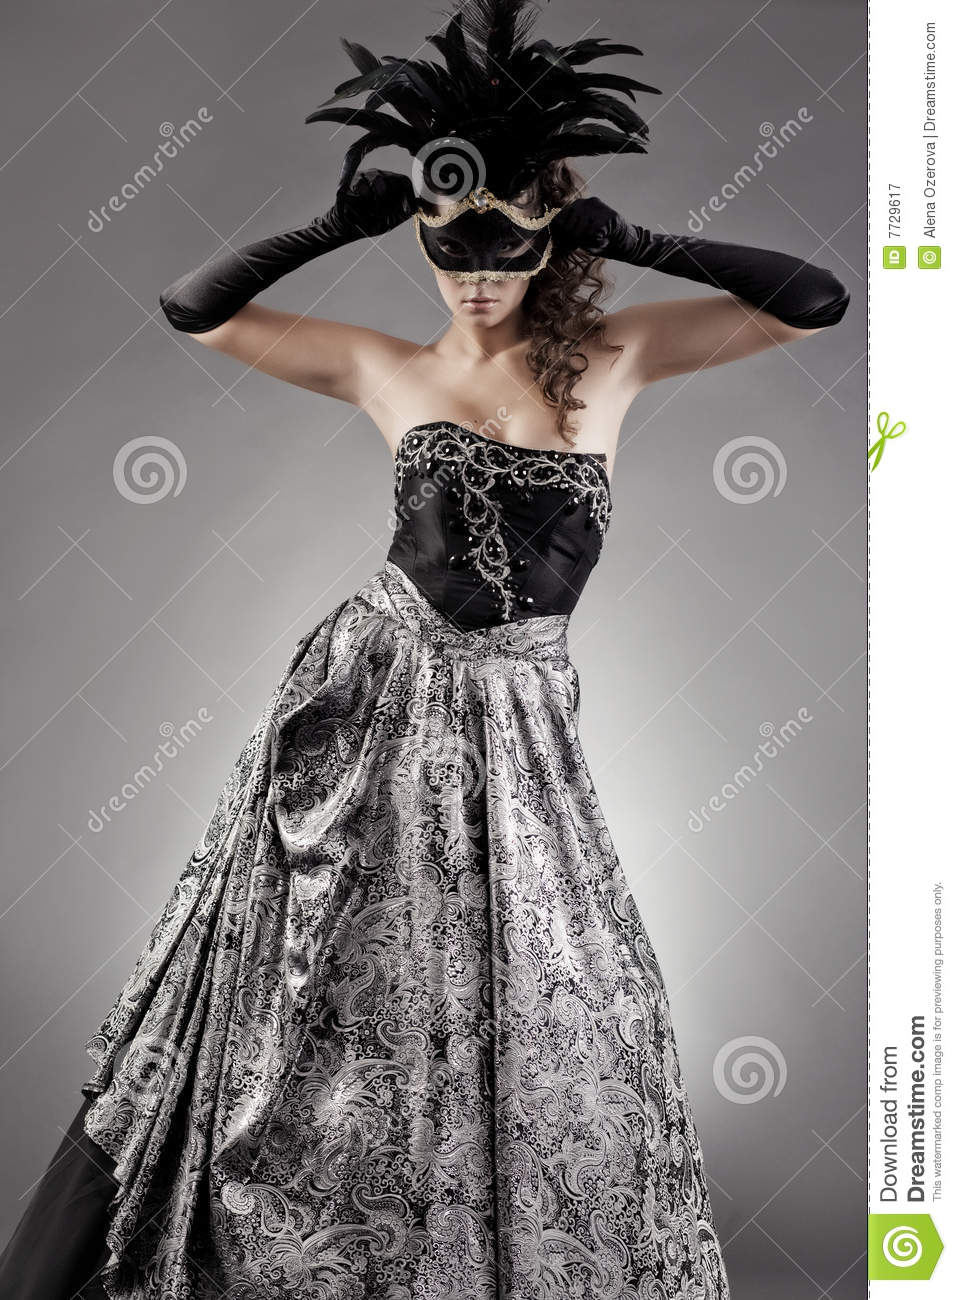 Incognito Royalty Free Stock Photography Image 7729617